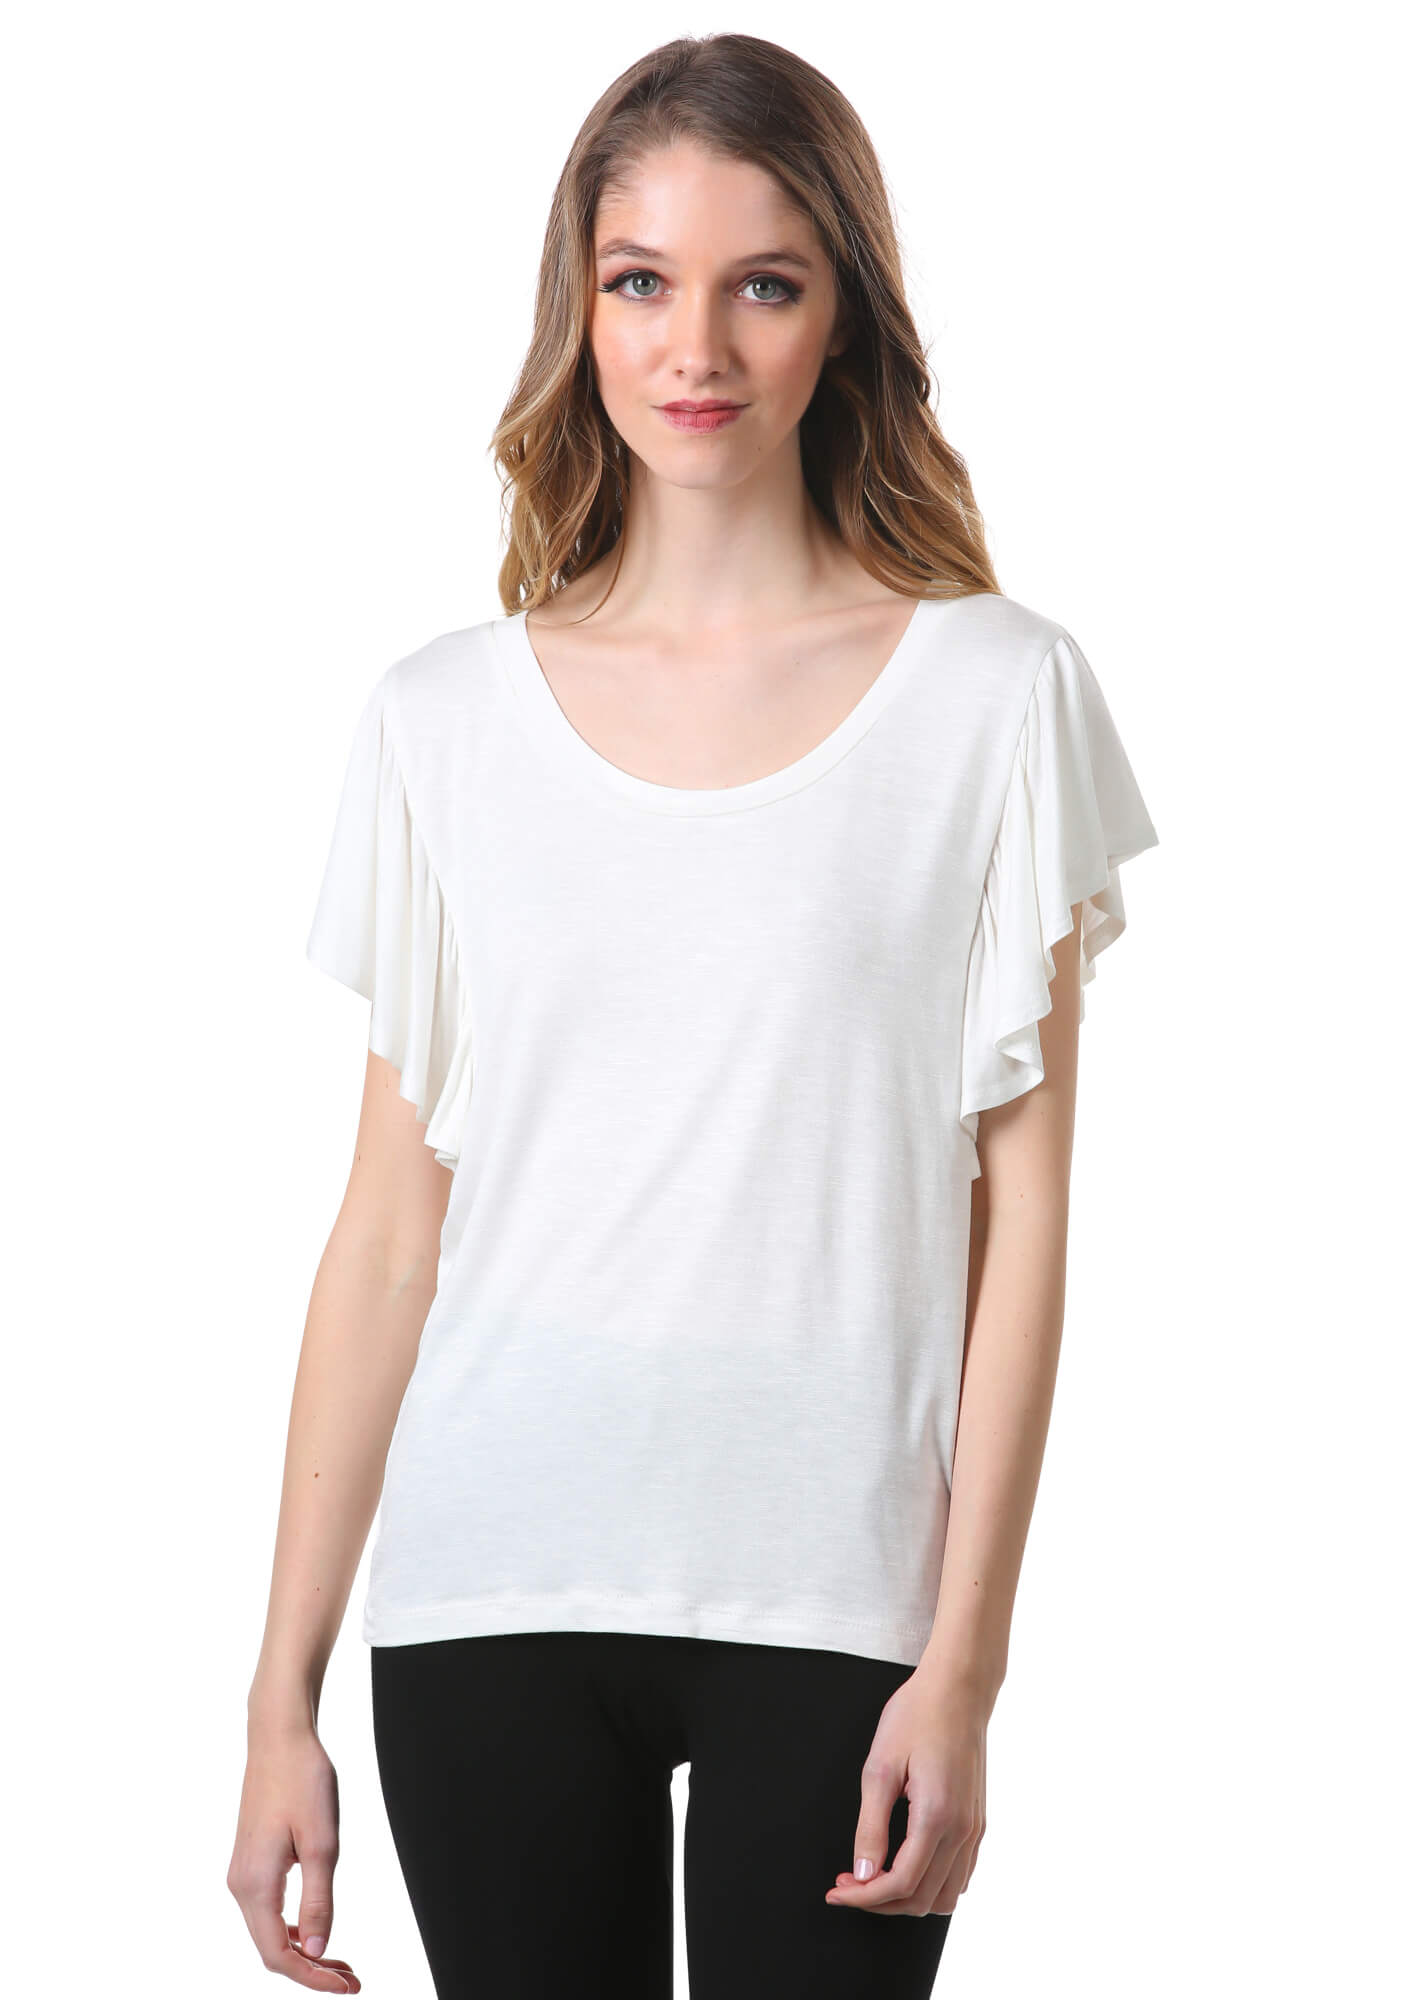 Flutter Short Sleeve Scoop Neck Top in White